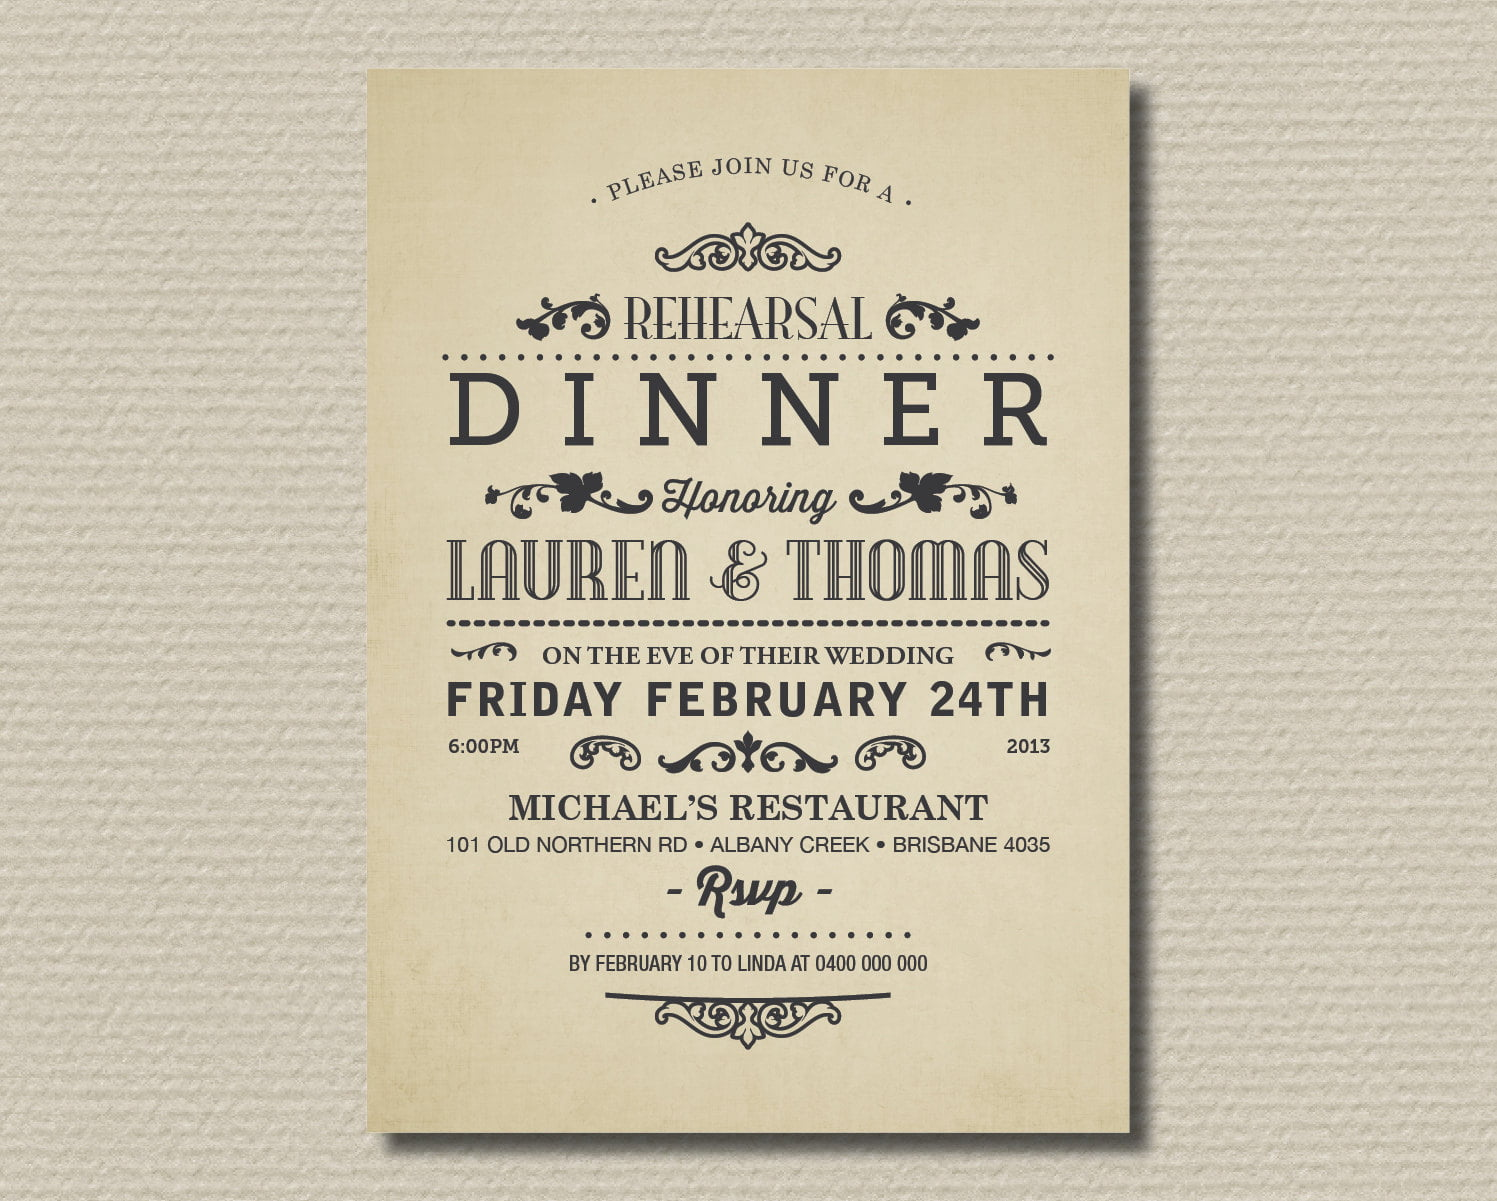 Birthday dinner invitation wording ideas bagvania free printable classical birthday dinner invitation wording ideas stopboris Images